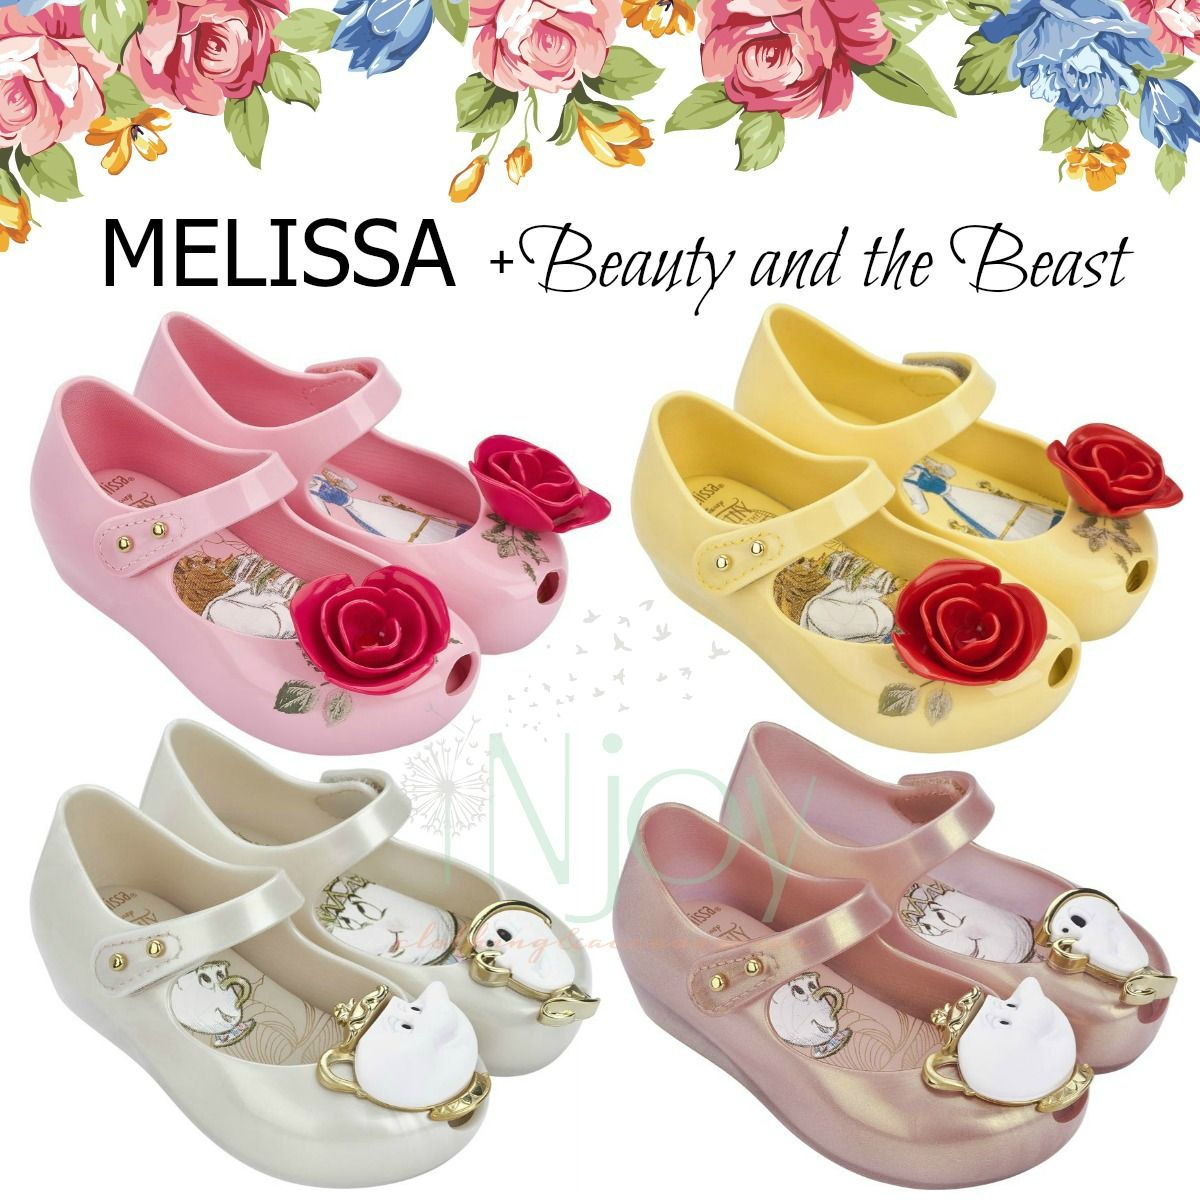 e8957b642035 MELISSA + Beauty and the Beast toddler girl shoes!  Disney  MiniMelissa   shopinjoy  Belle